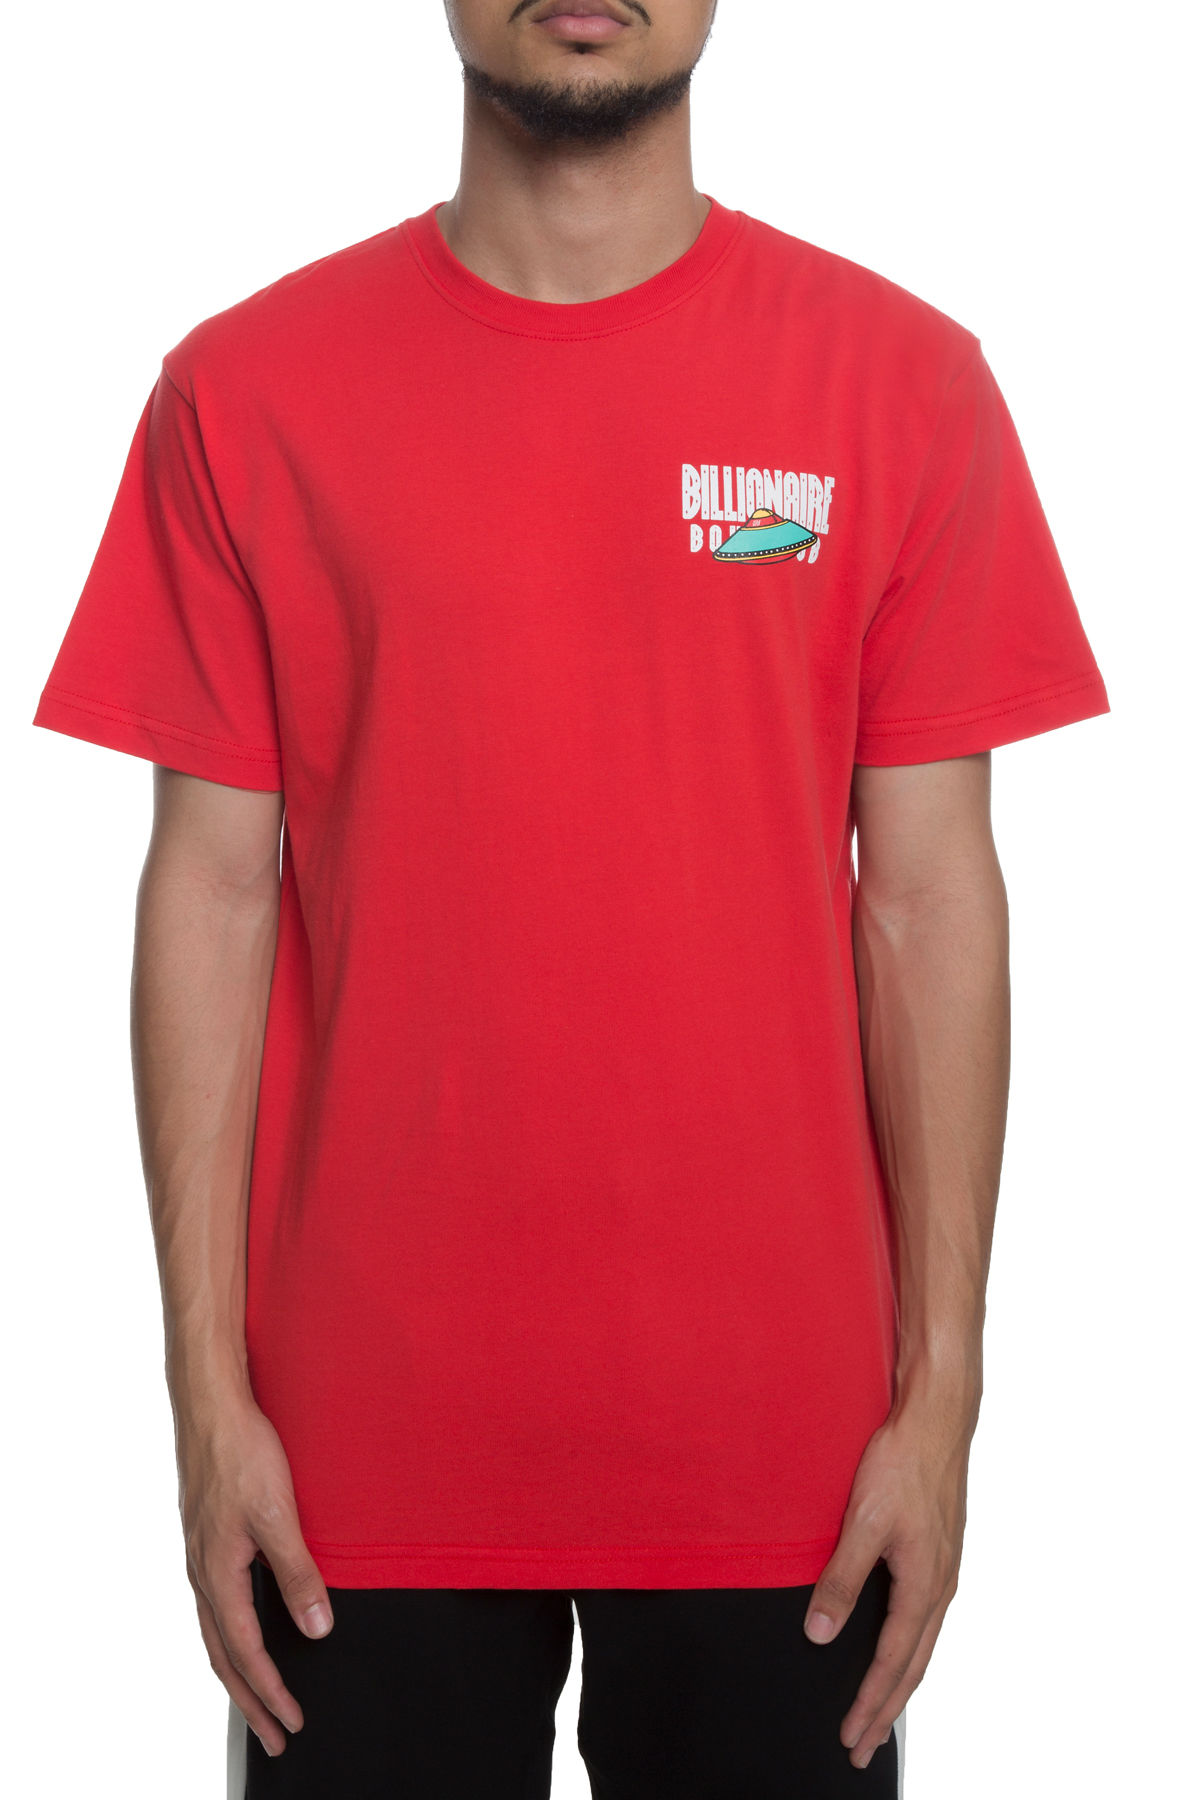 Image of The Billionaire Boys Club The Encounter Tee in Flame Scarlett